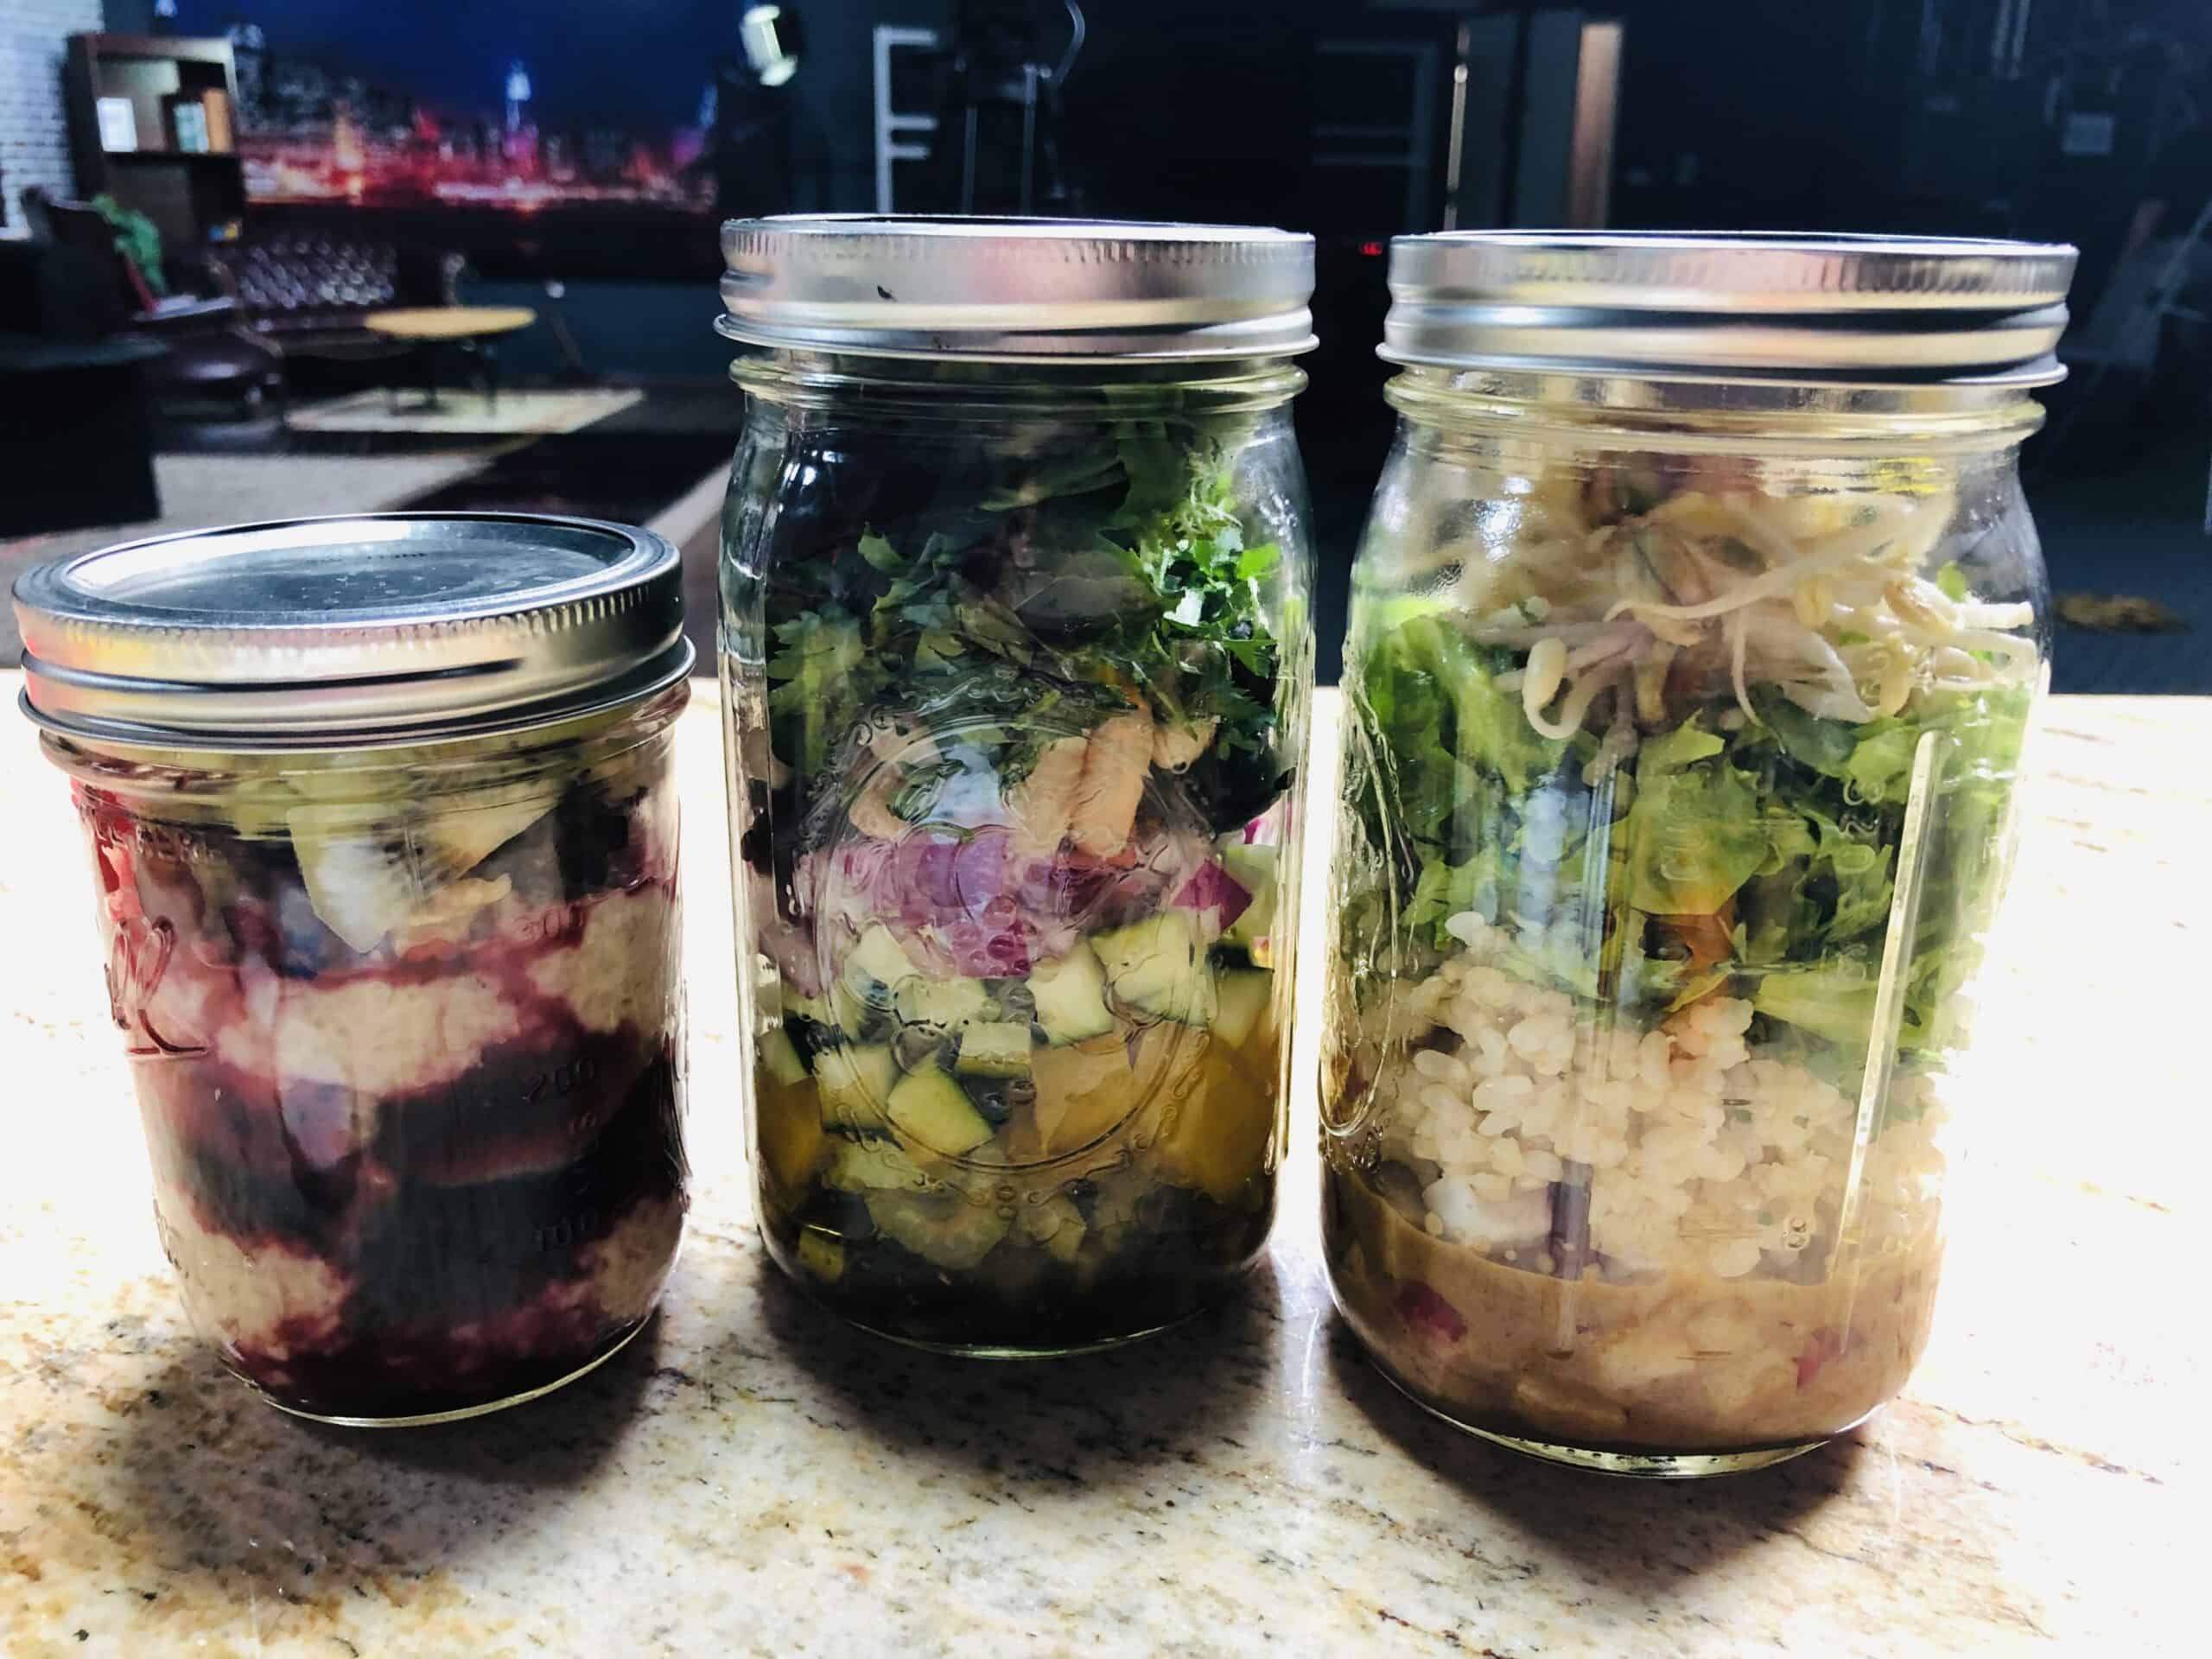 Three mason jar meals prepped wit rice and vegetables for healthy plant-based meal prep